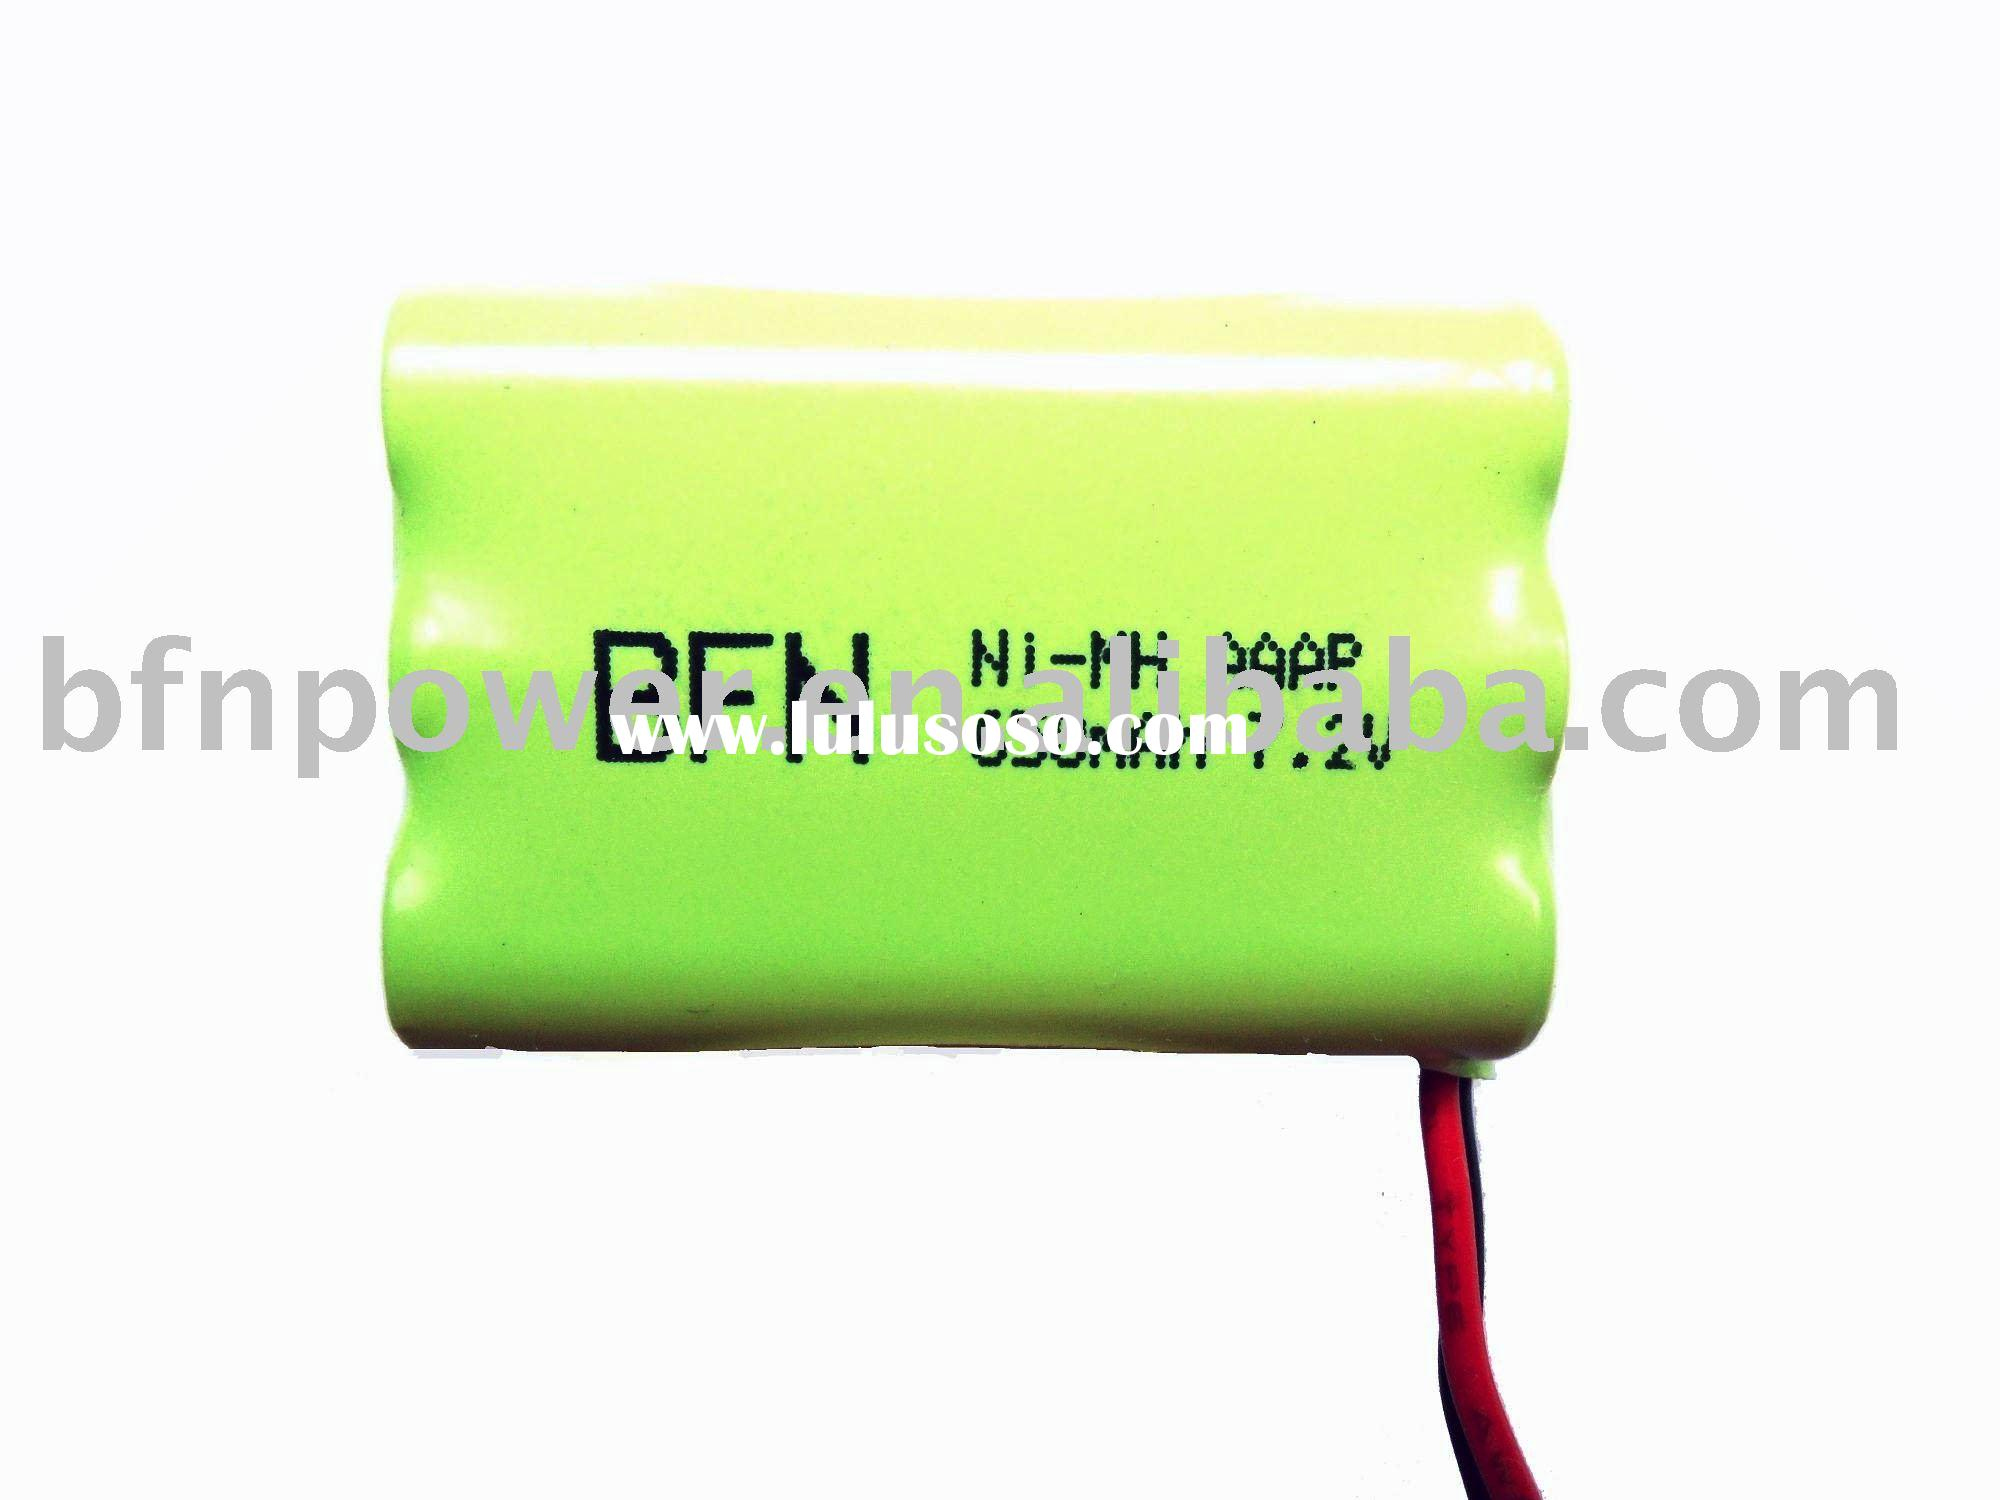 NiMH High Power Rechargeable Battery Pack(650mAh AAAP 7.2V)